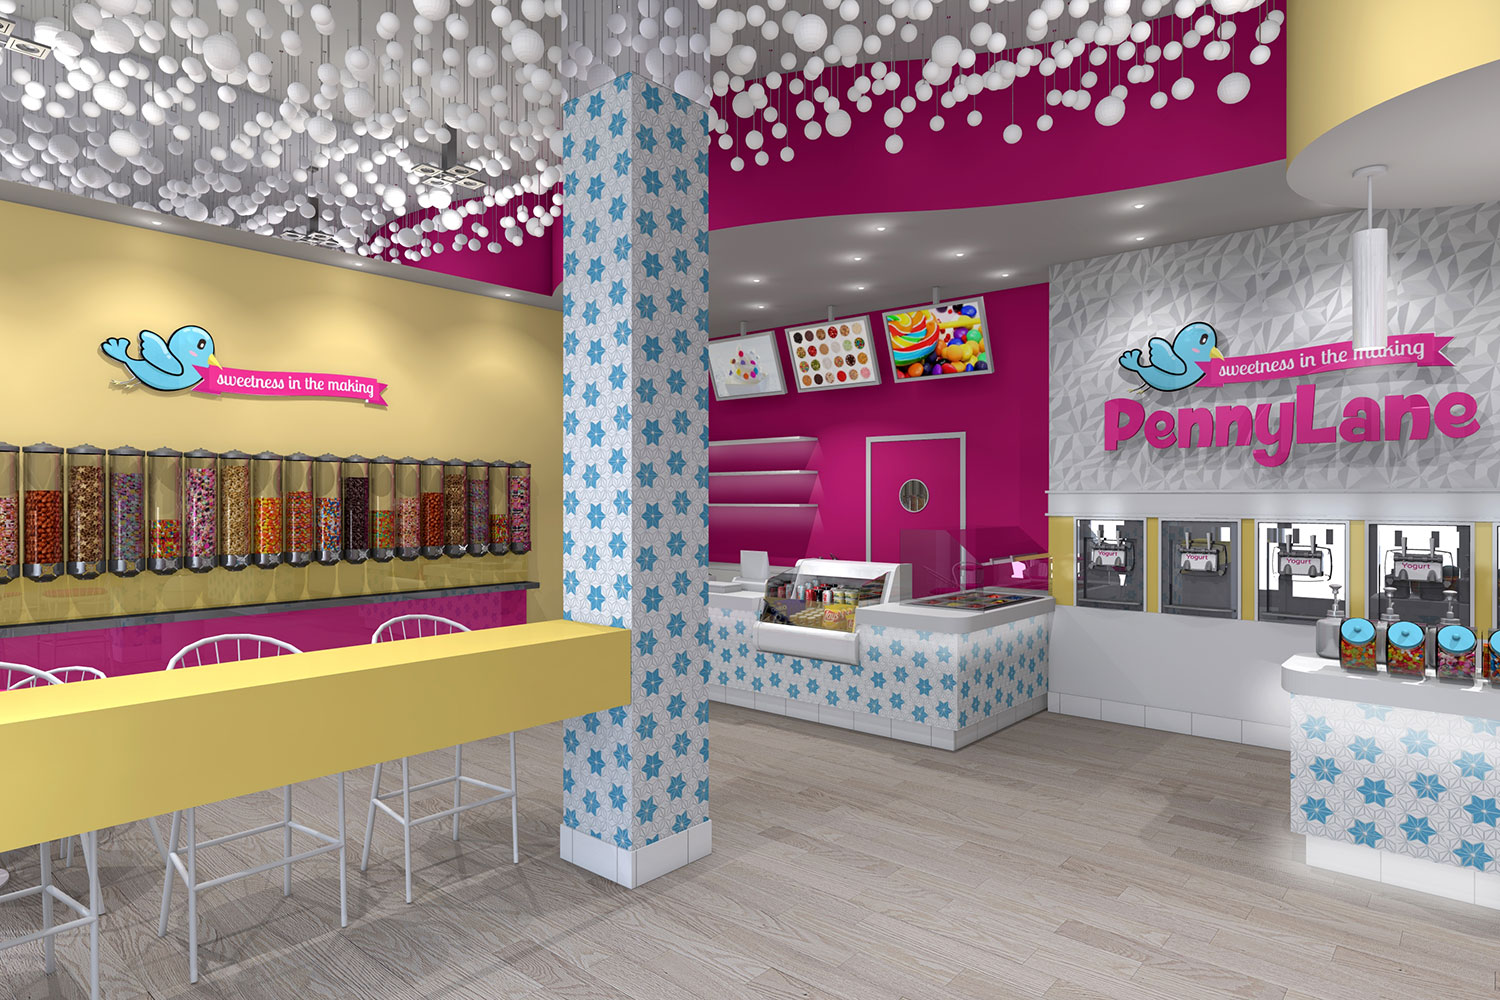 Interior Design of Yogurt Shops